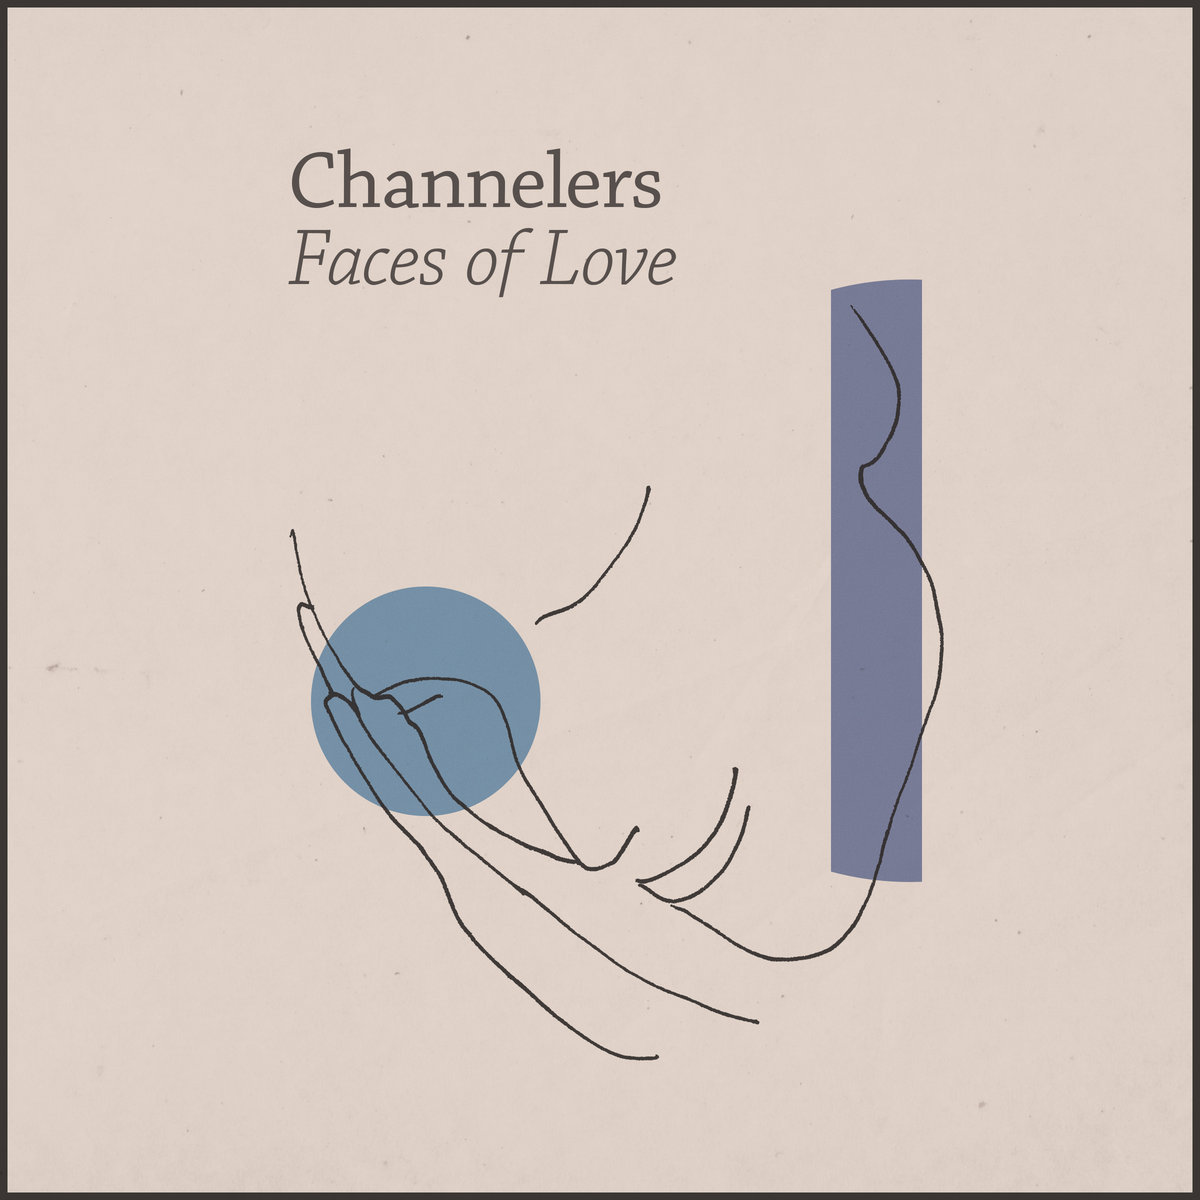 Bandcamp pick of the week: Channelers - Faces of Love